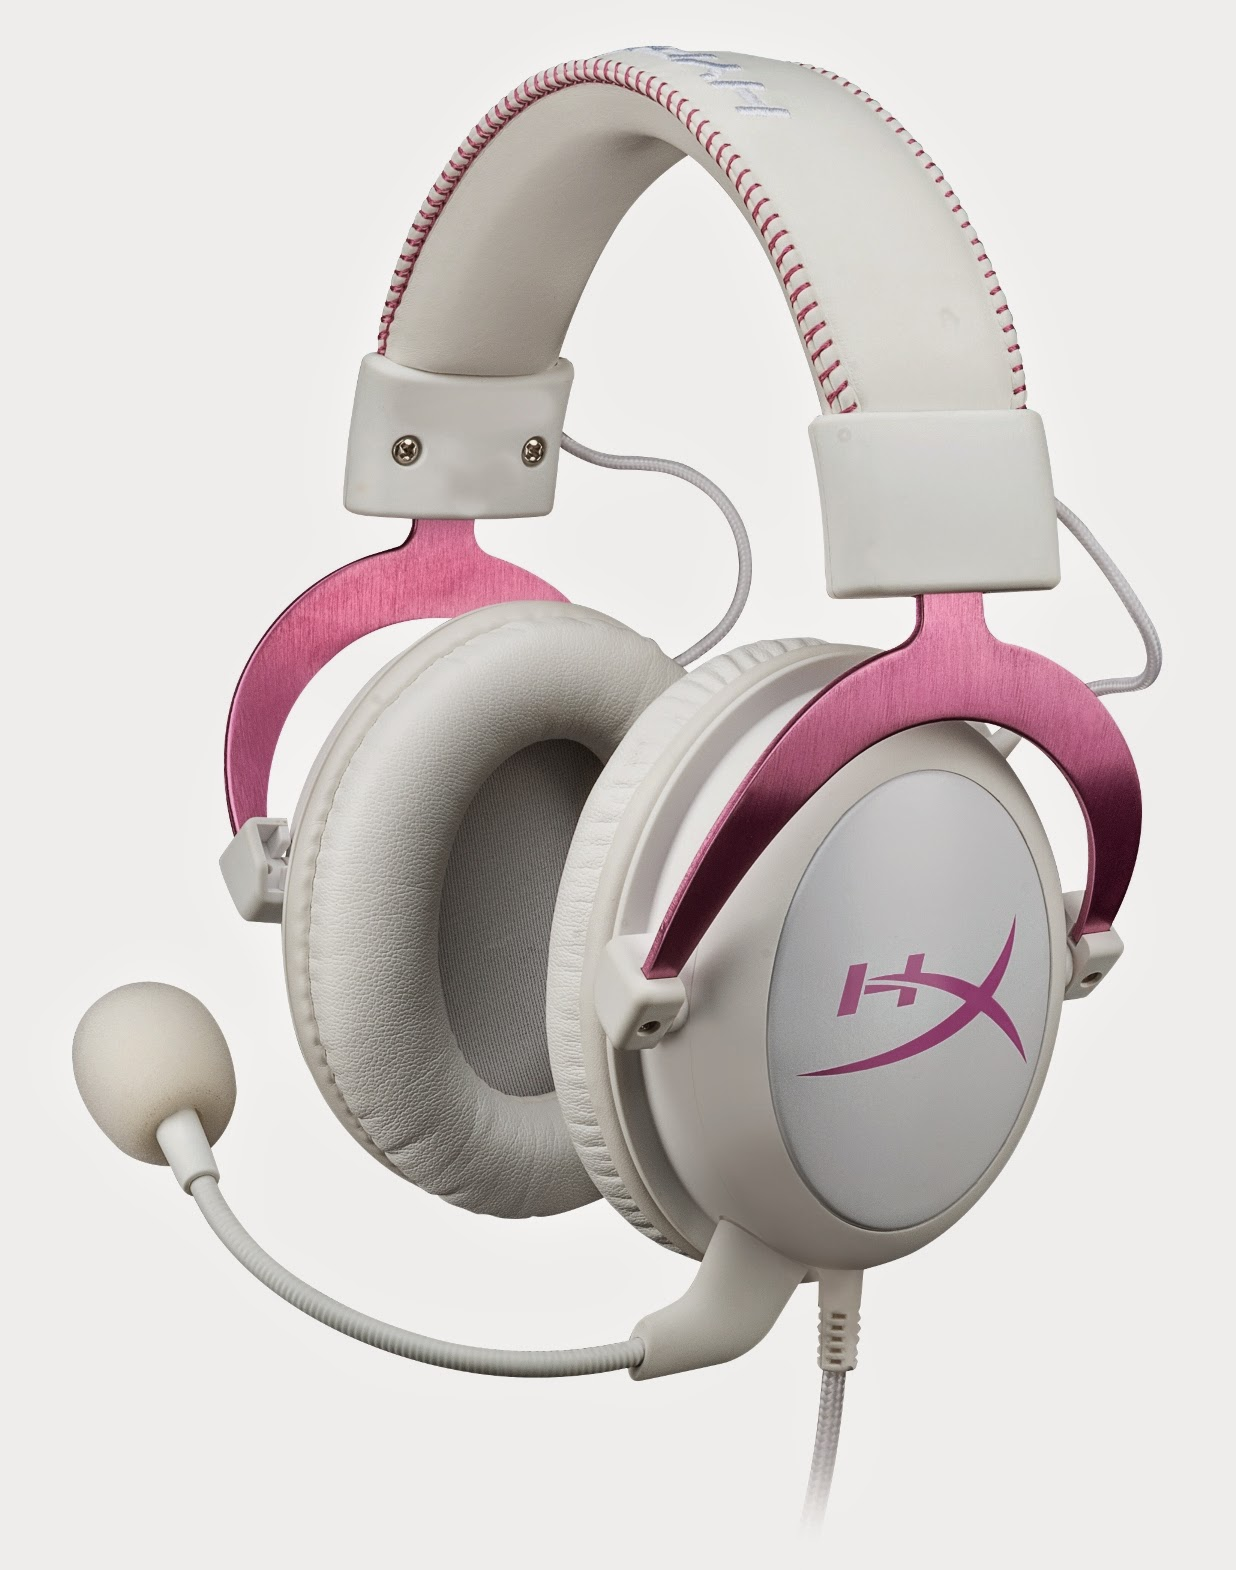 Kingston hyperx cloud ii gaming headset word cloud - For People That Want Bright There S Also A White And Pink Model On Its Way